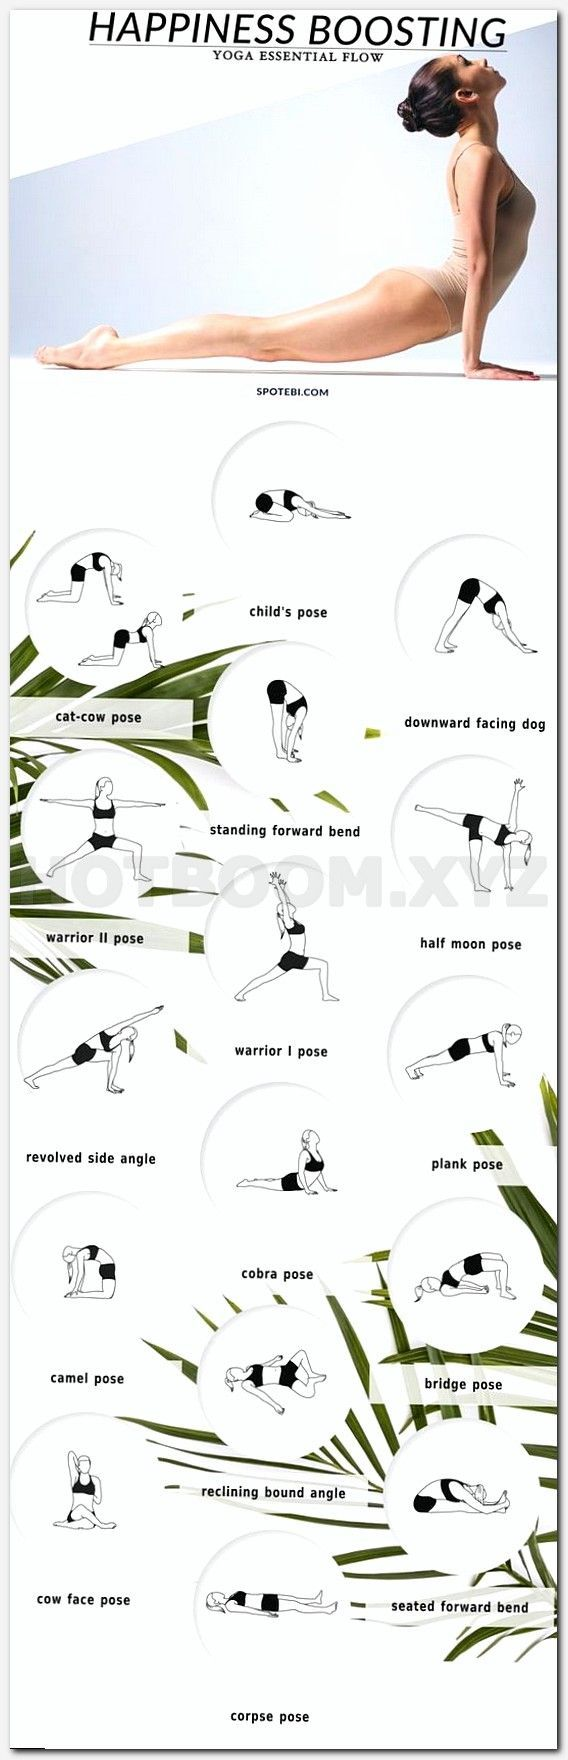 exercises to lose fat, how do you lose weight doing yoga, 90 day weight loss plan, how to boost metabolism female, the best yoga poses, metabolic weight loss plan, yoga for weight gain for men, exercise to reduce stomach, what foods speed up your metabolism, extreme yoga workout, hatha yoga flow, prenatal yoga poses second trimester, best gym routine for weight loss, yoga to lose weight from thighs, yoga diet control chart, ramdev weight loss exercise